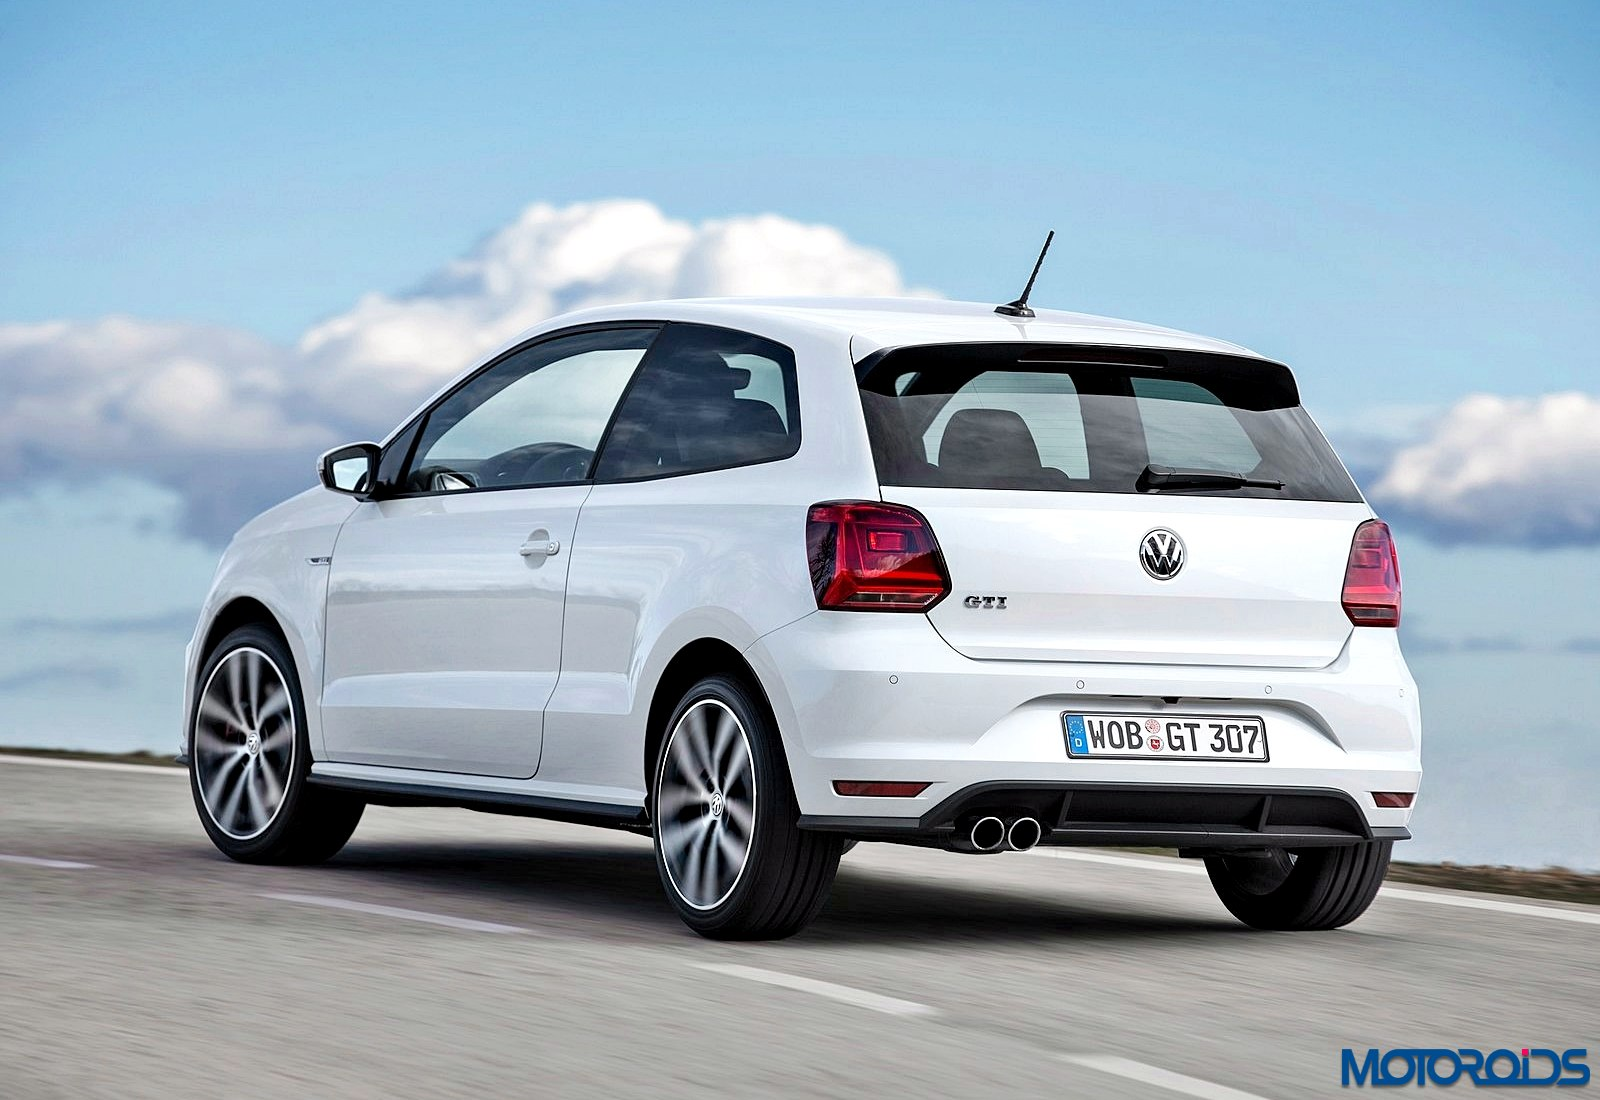 spied volkswagen polo gti spotted testing in india motoroids. Black Bedroom Furniture Sets. Home Design Ideas